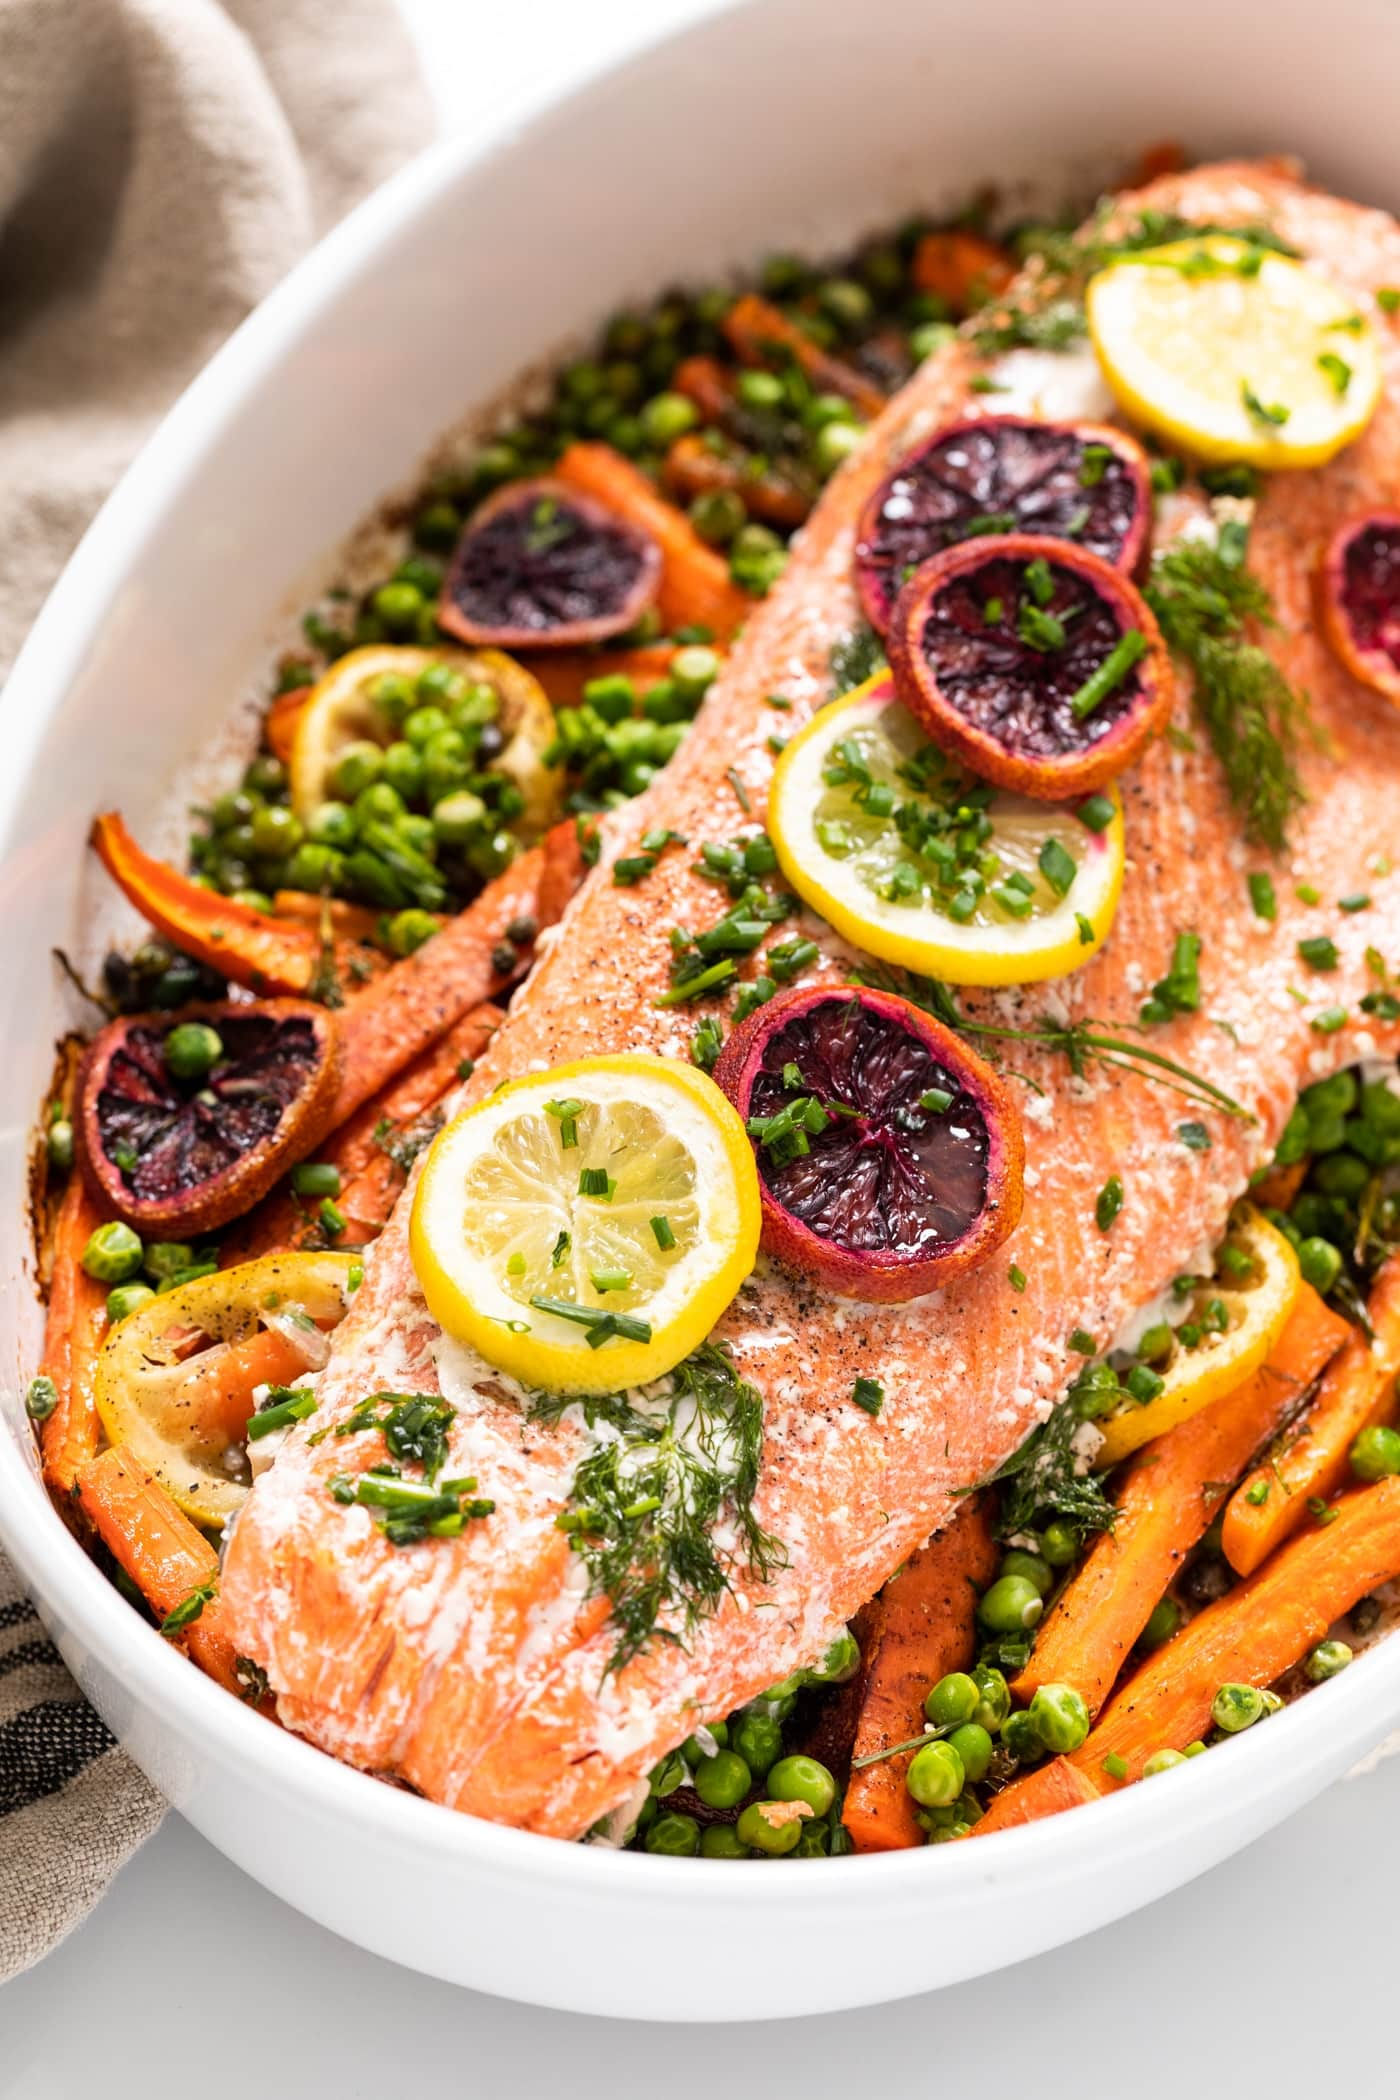 Large white platter filled with carrots and topped with filet of salmon and slices of lemon and orange pieces